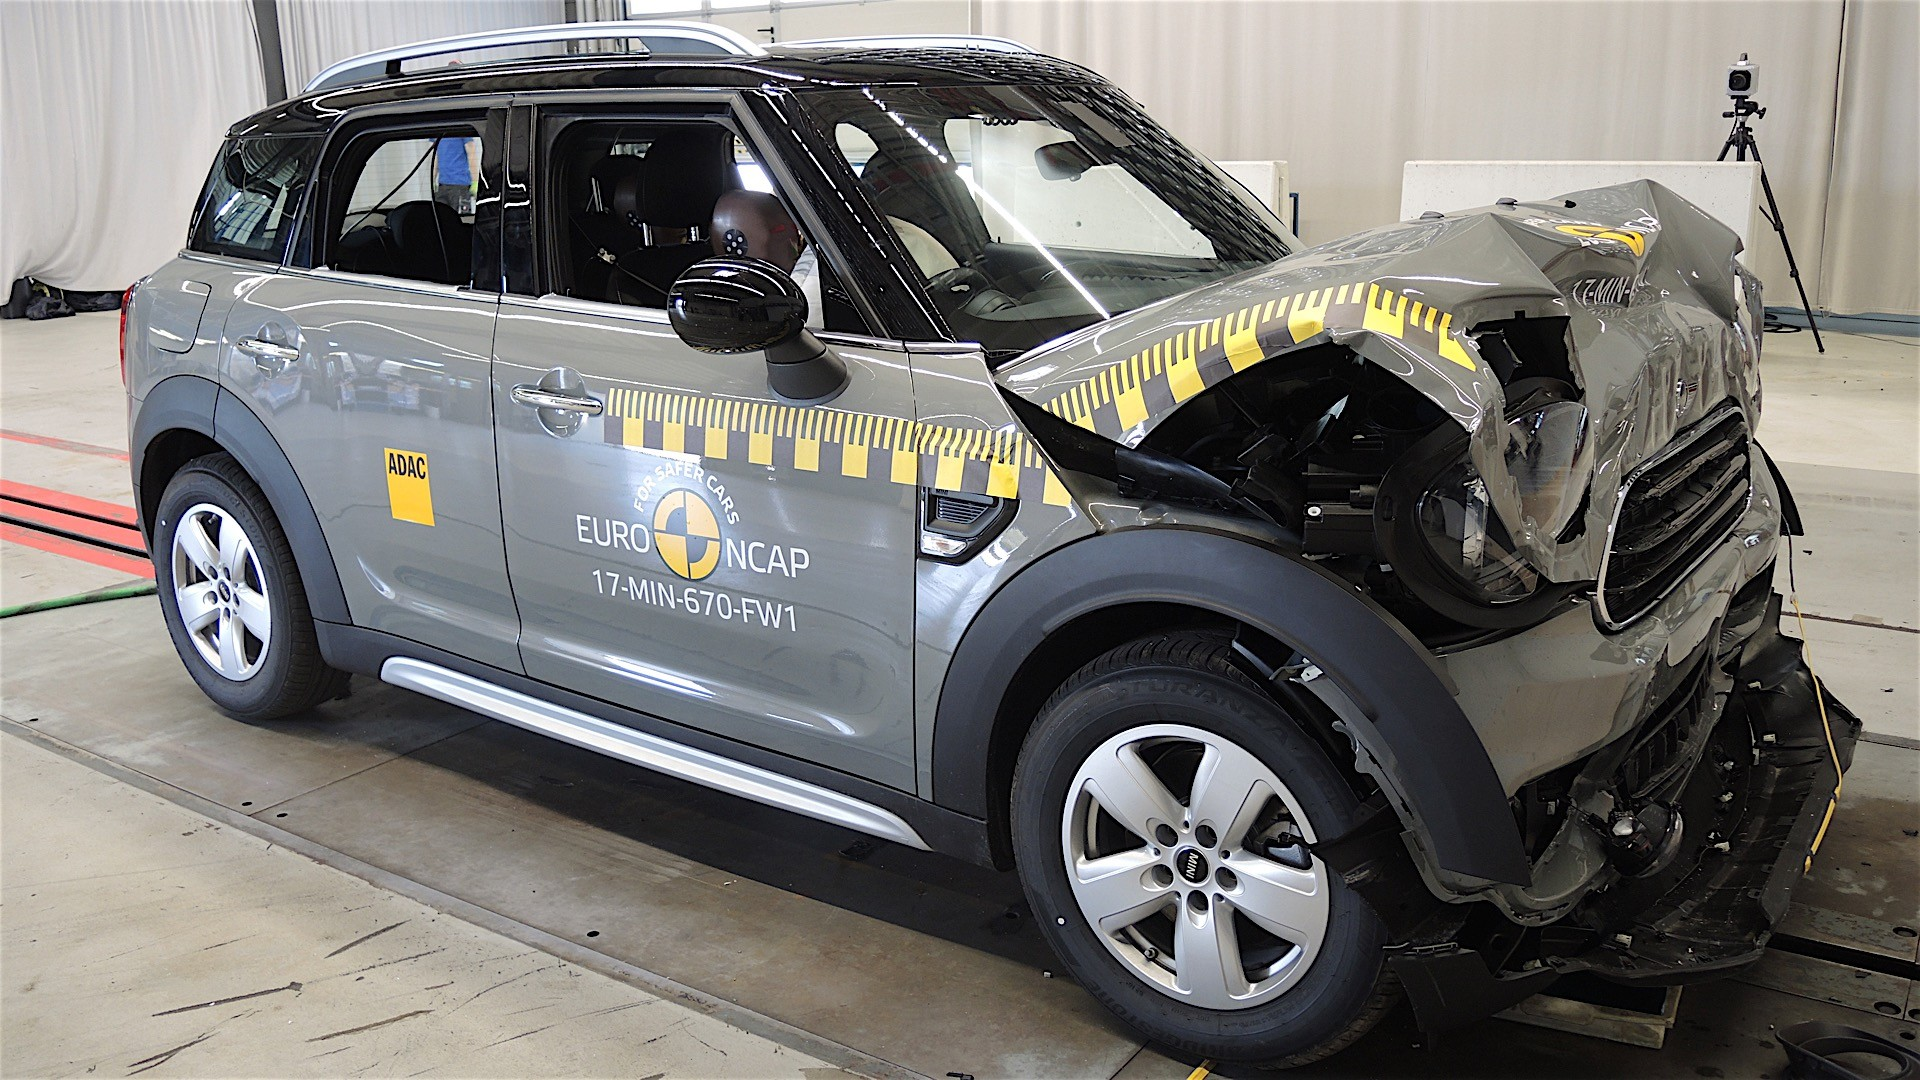 Euro NCAP crash tests may 2017 (24)